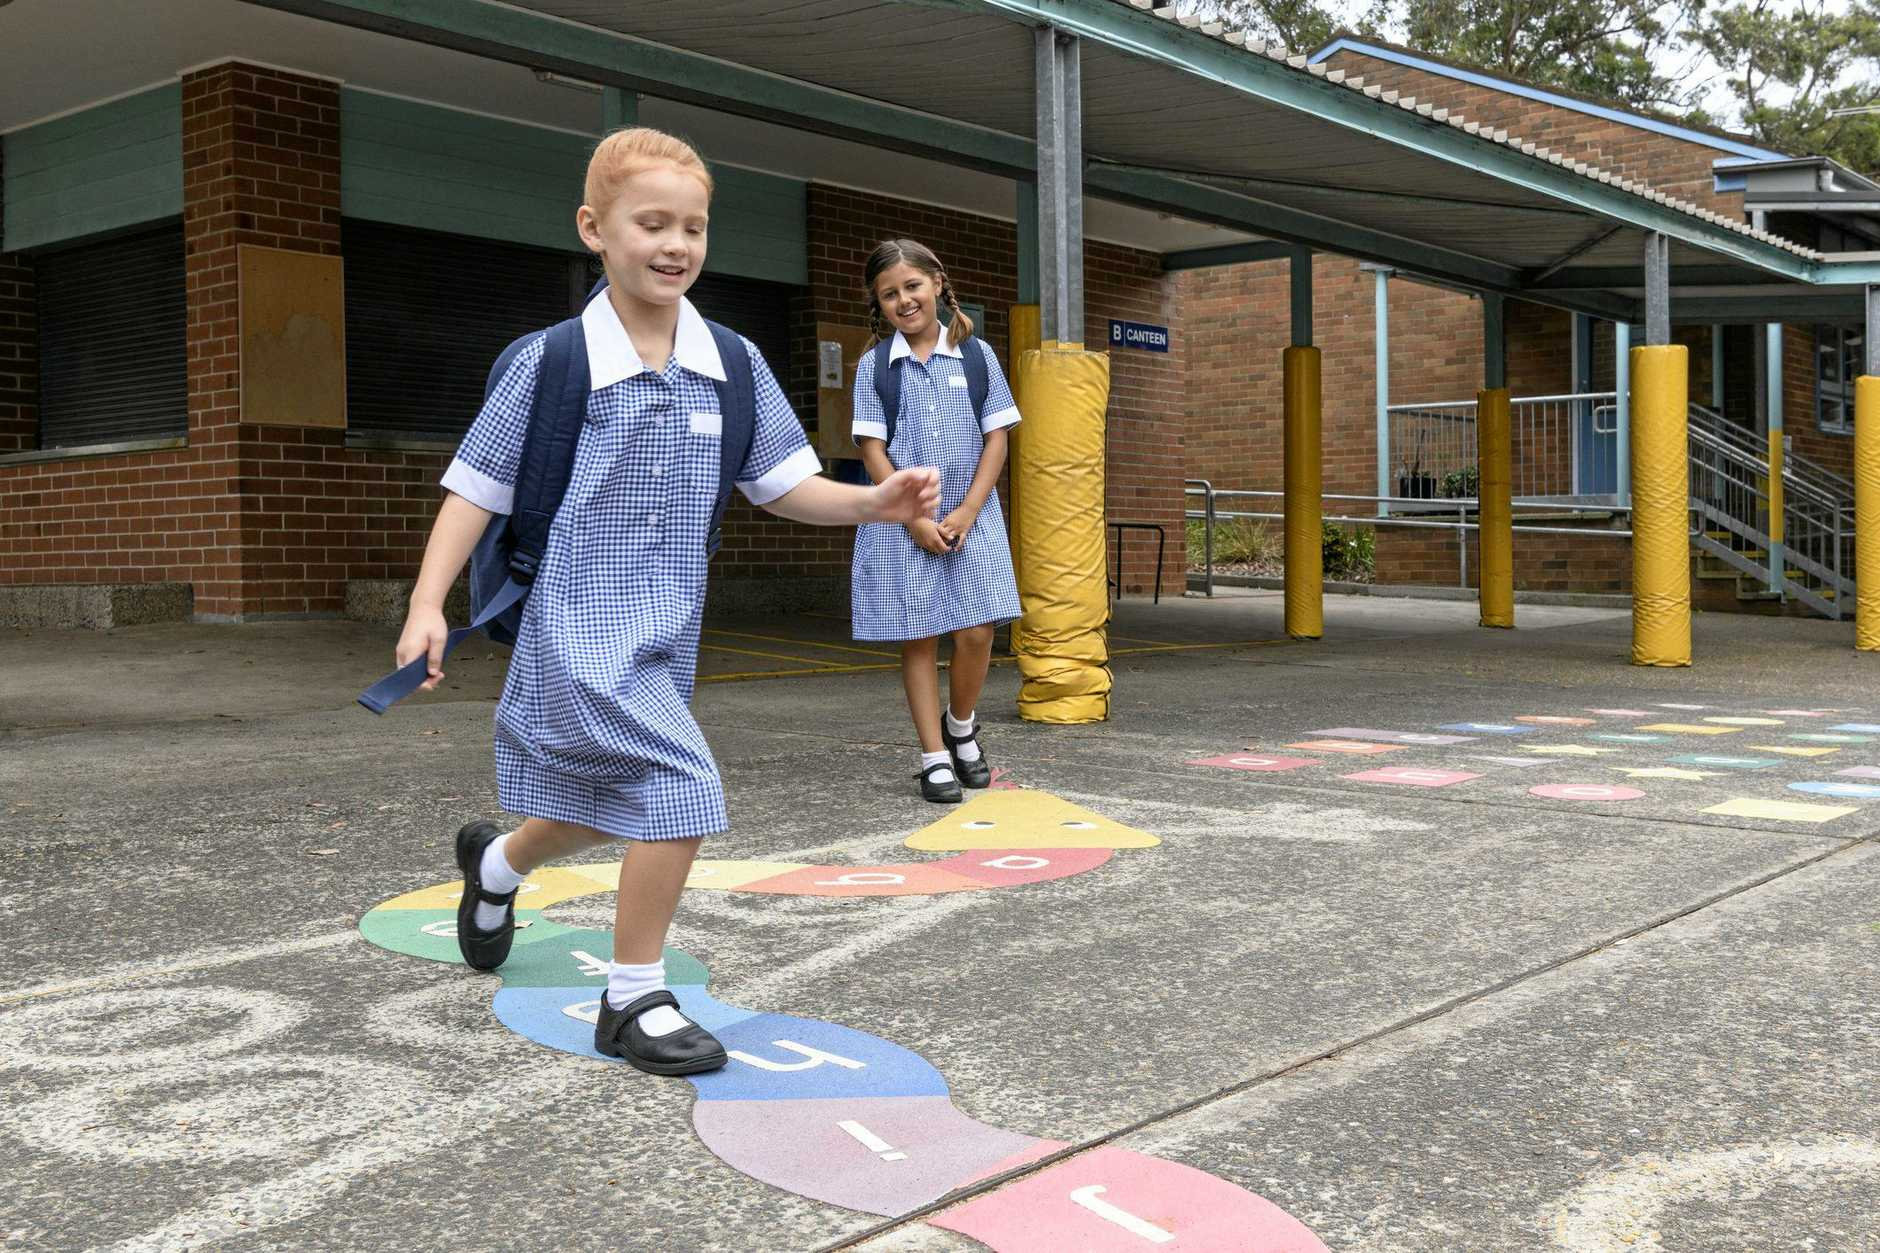 SCALES IN SCHOOL: Warwick Dietician Elia Faa asks whether the benefits of weighing kids to collect obesity data would outweigh the